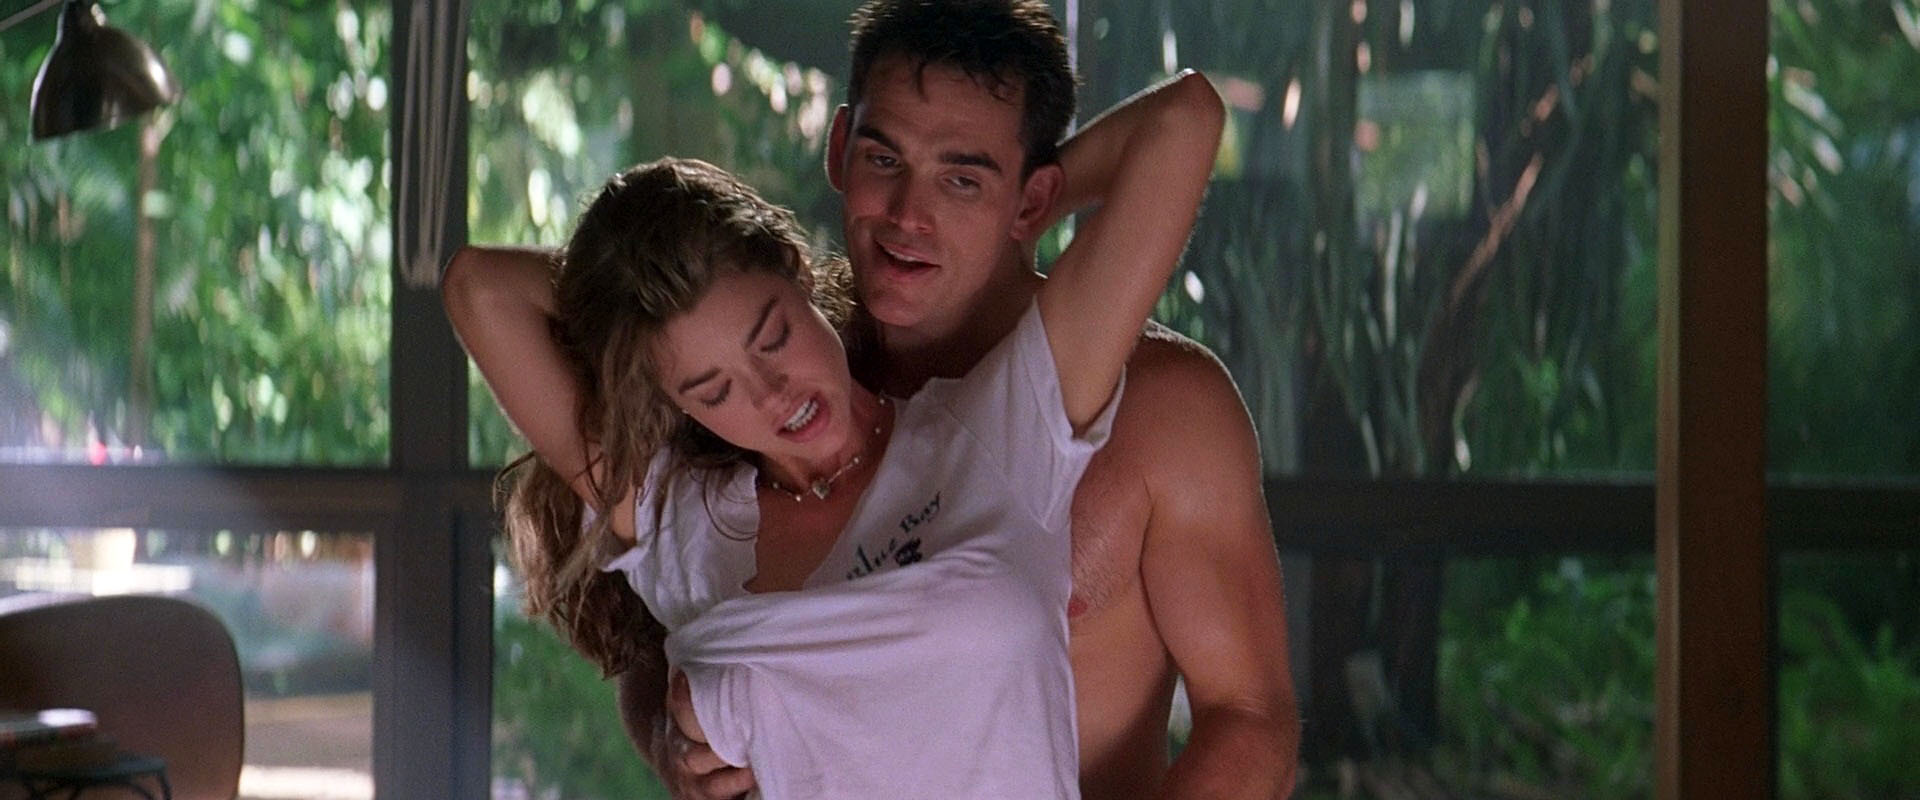 Denise richards in wild things french